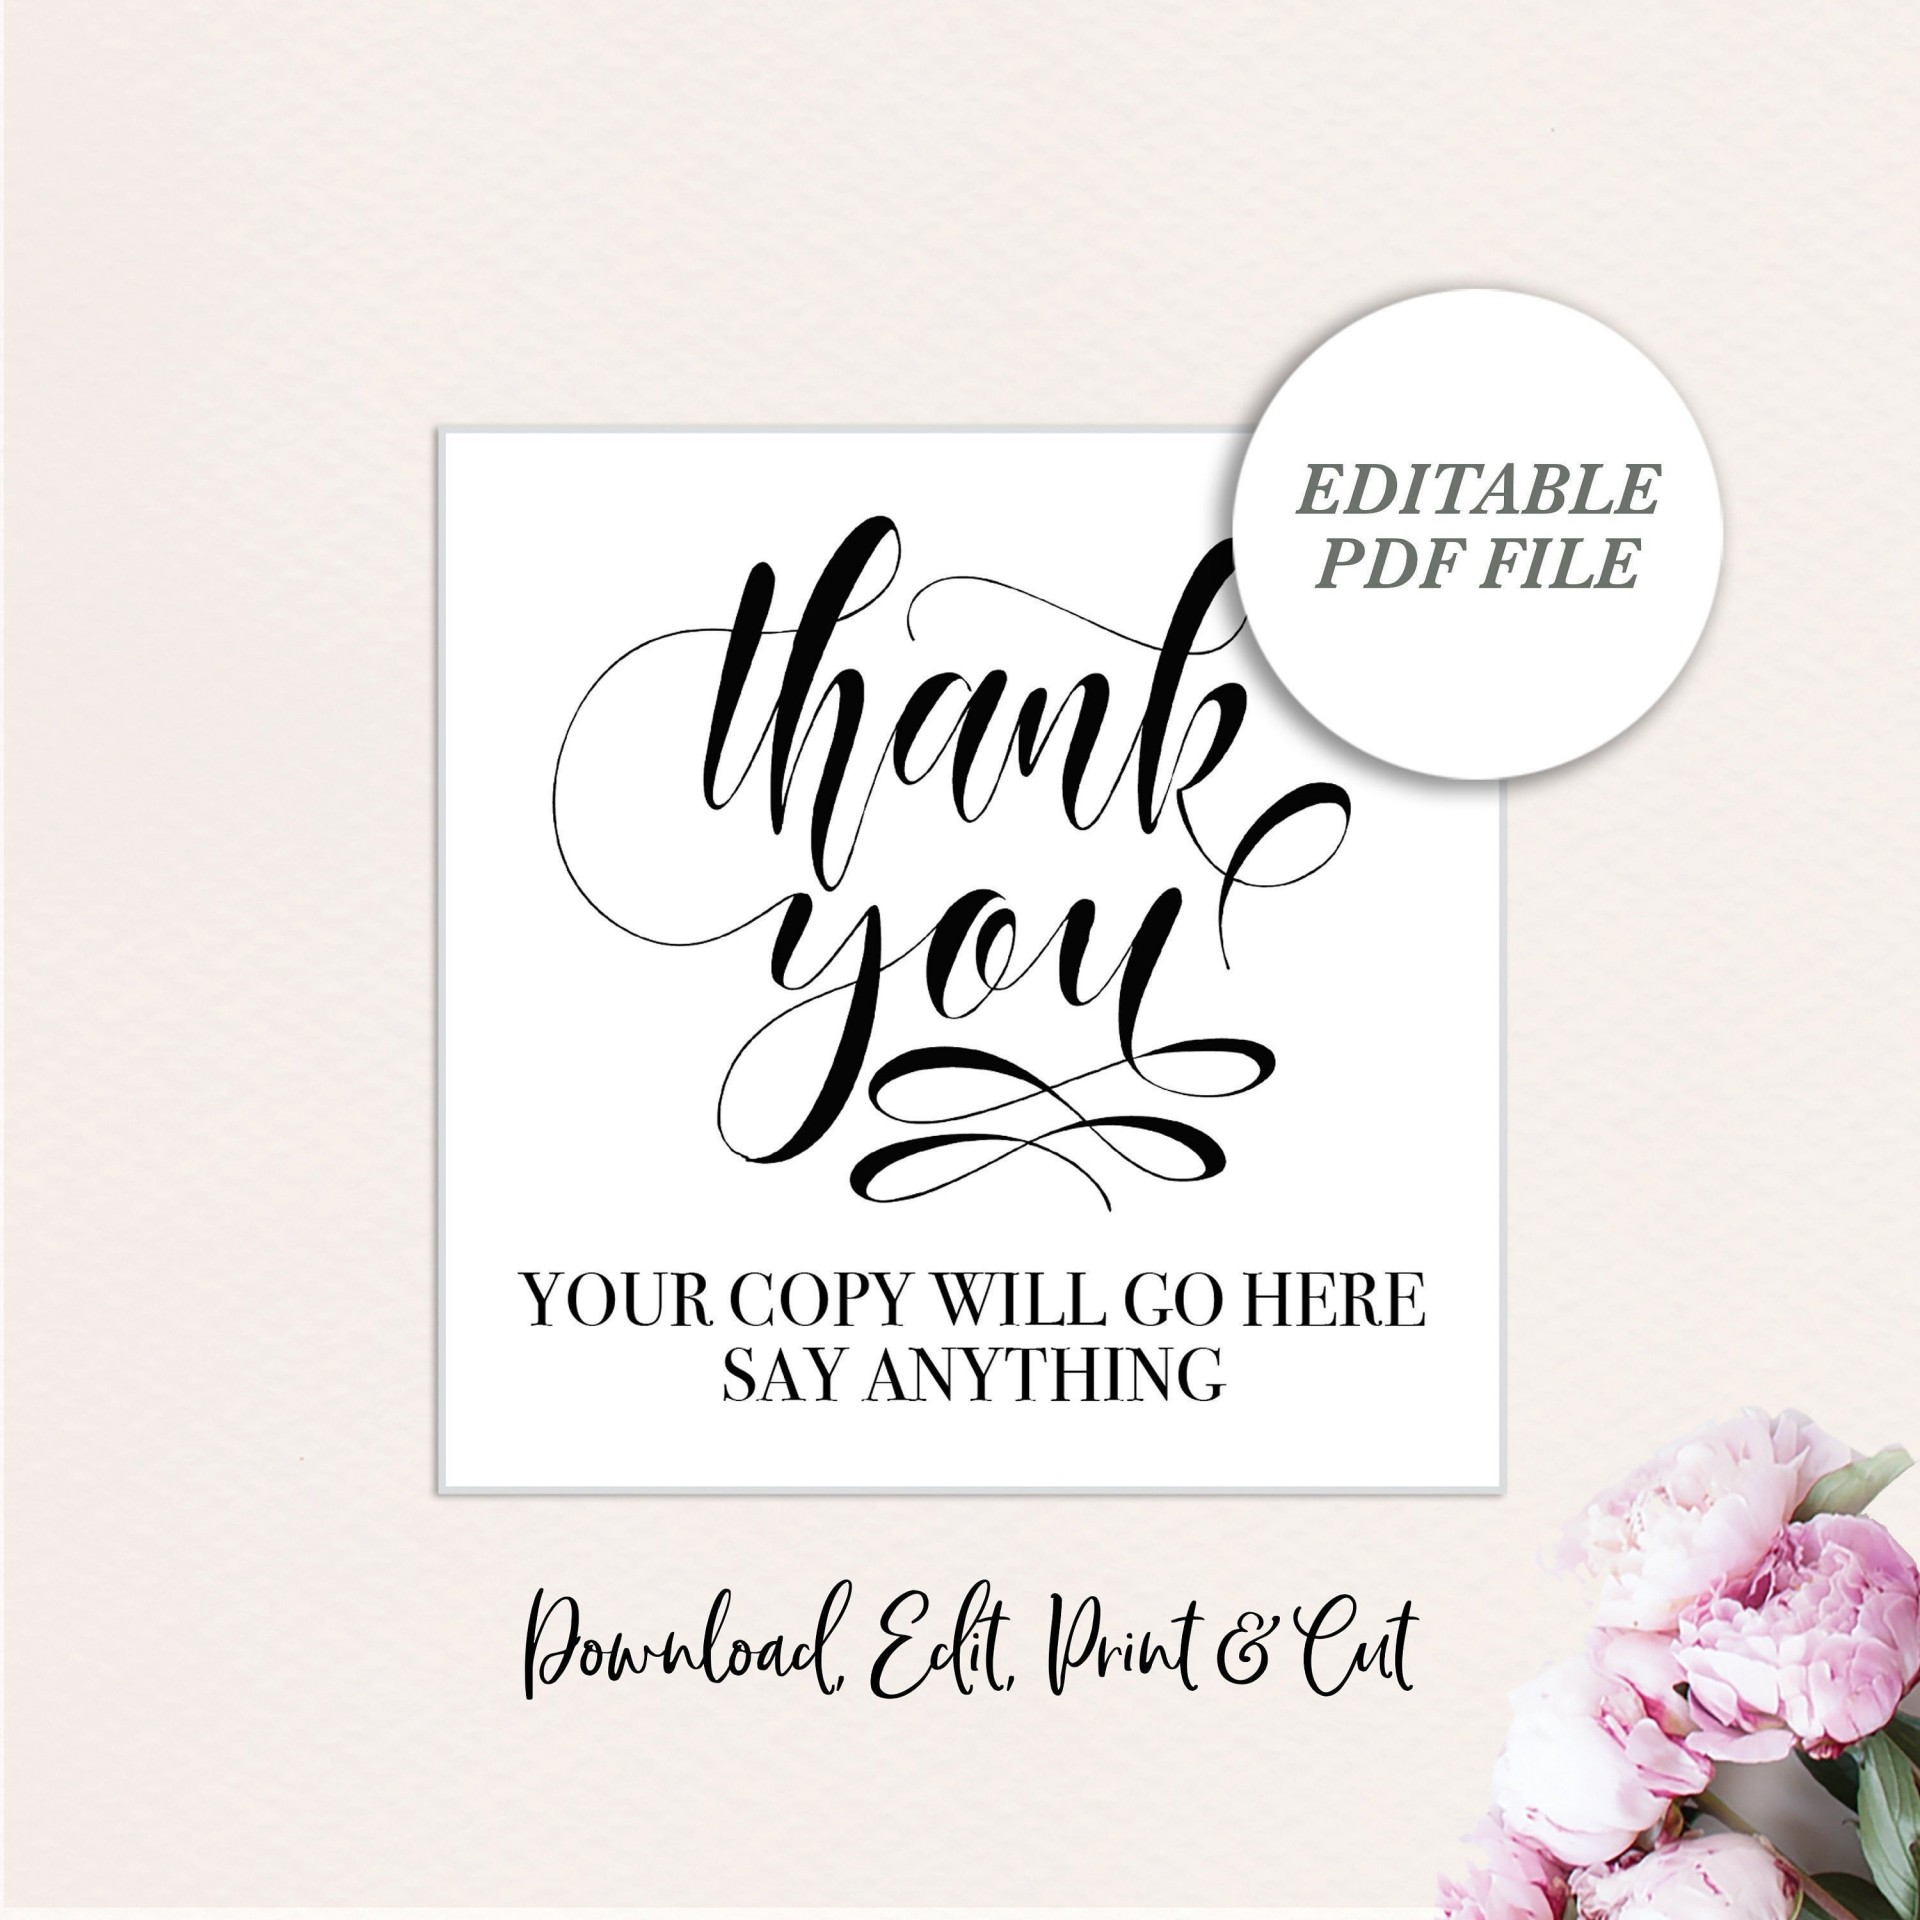 006 Stirring Wedding Favor Tag Template Picture  Templates Editable Free Party Printable1920